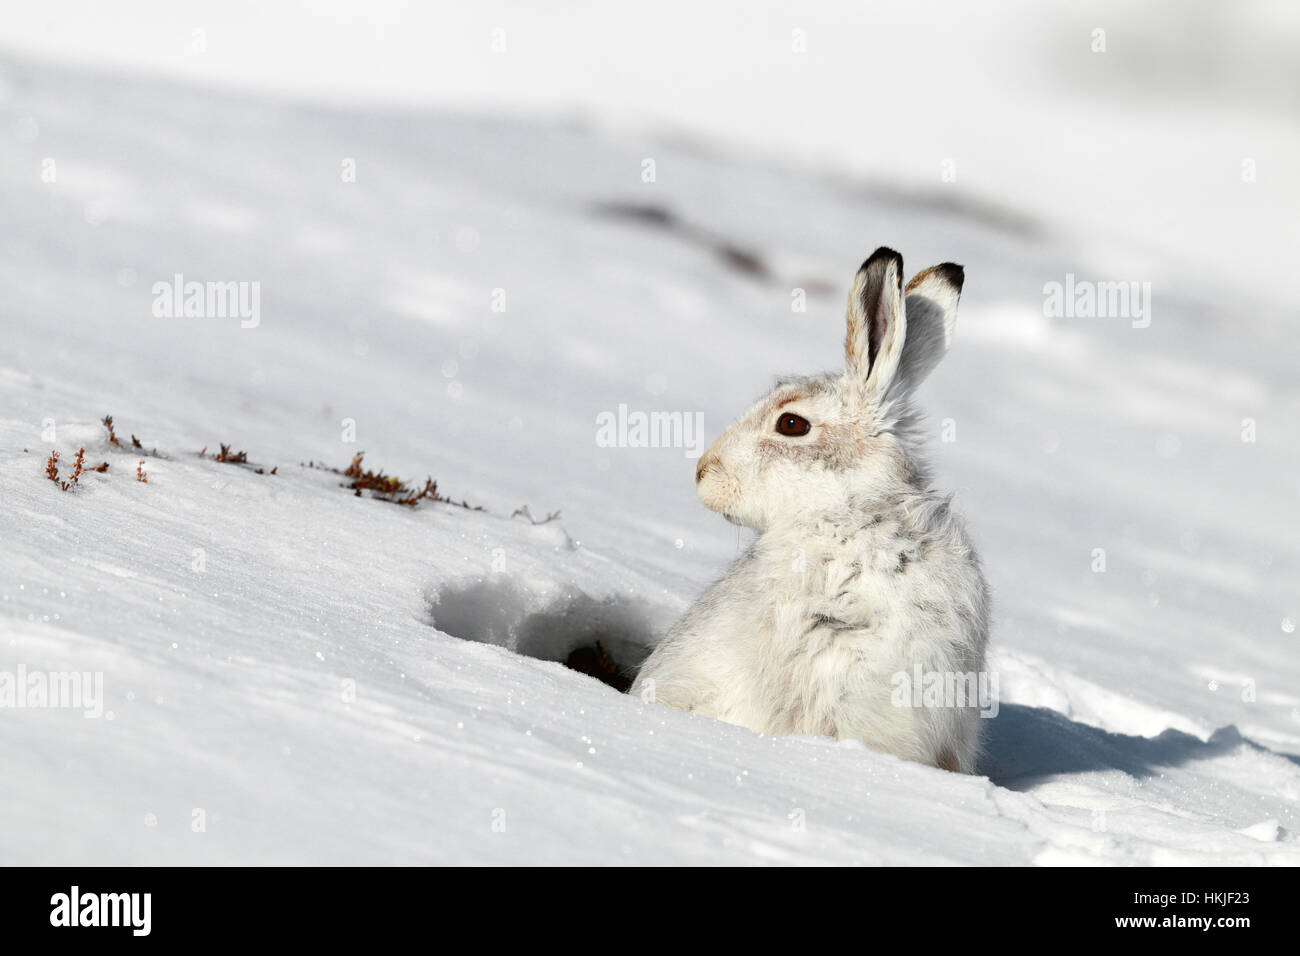 Mountain hare in snow - Stock Image